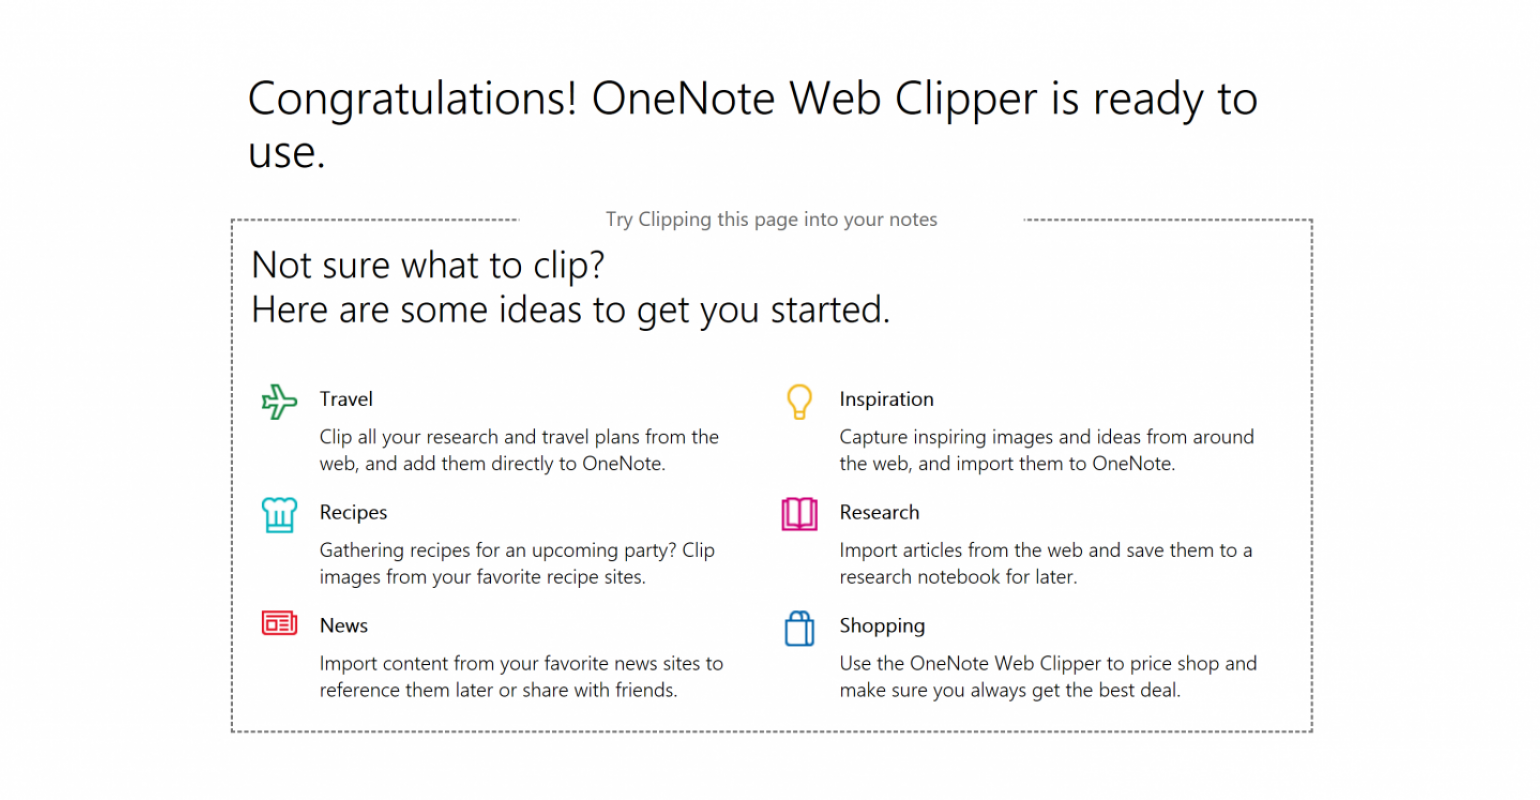 Microsoft Open Sources the OneNote Web Clipper | IT Pro